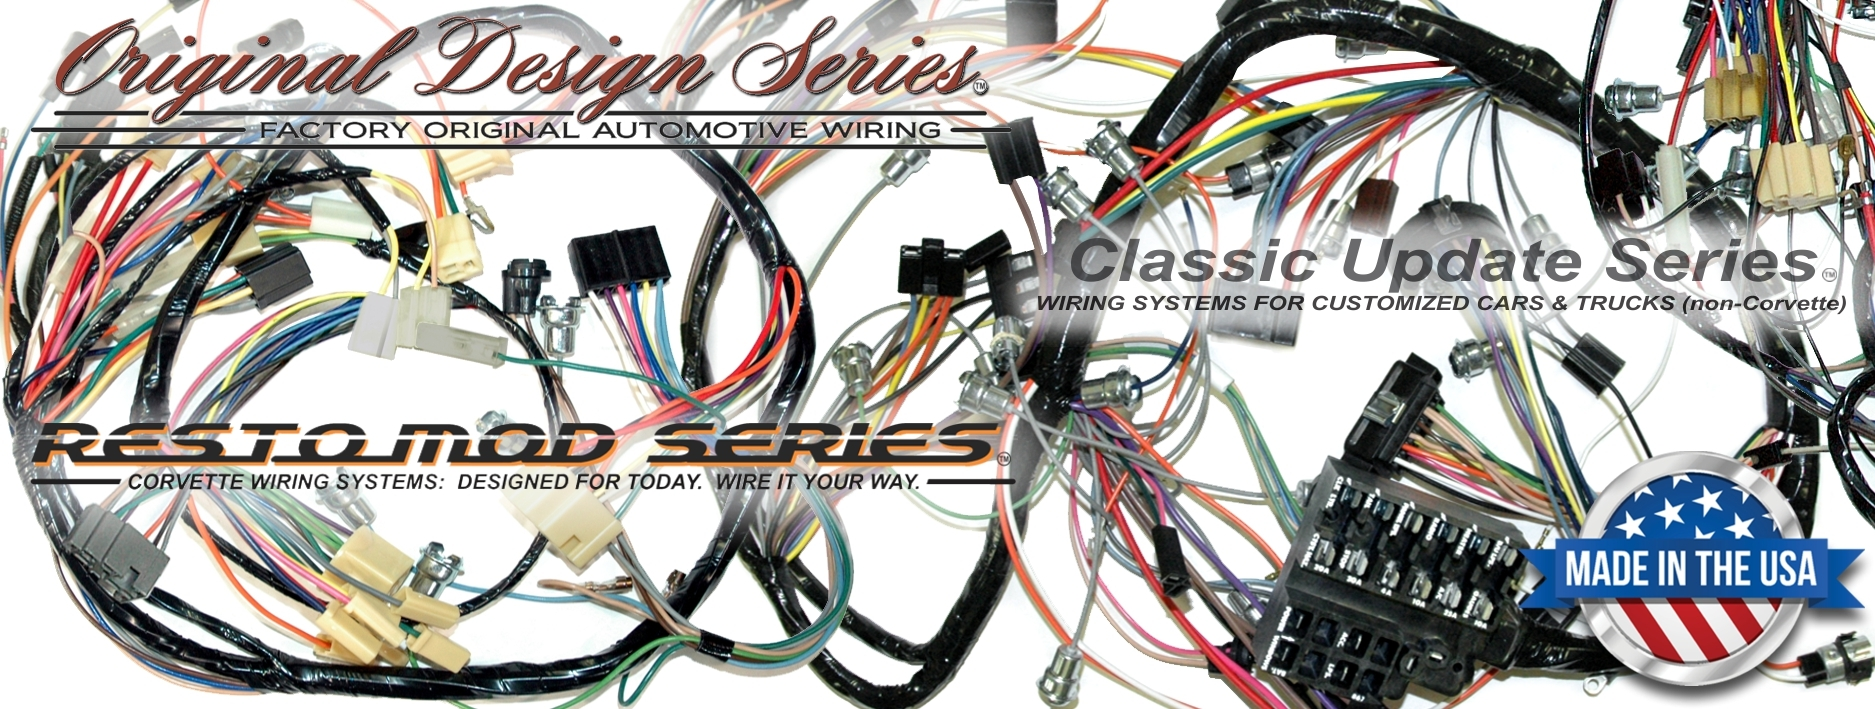 hight resolution of cadillac wire harness auto diagram database cadillac wire harness cadillac wire harness